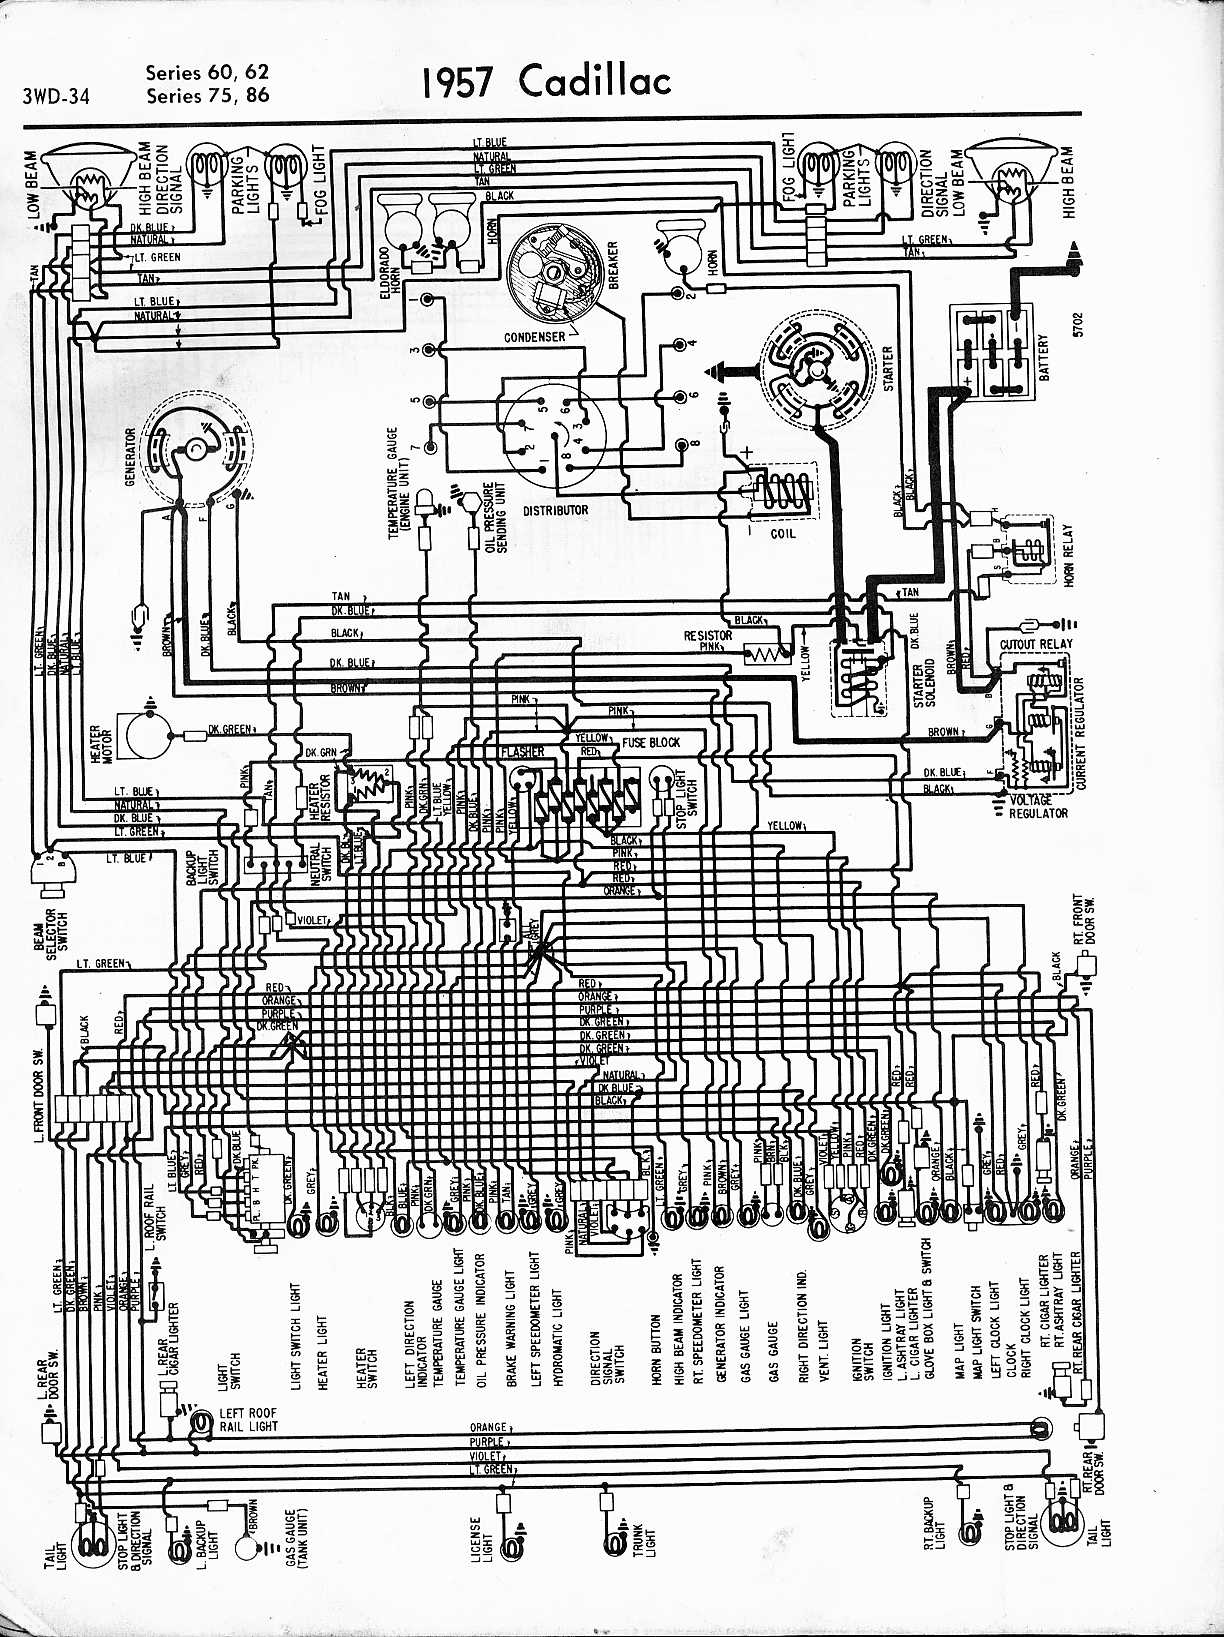 century dl1056 wiring diagram 2001 buick century transmission wiring diagram century electric motors wiring diagram 115 volt 316p760 ...